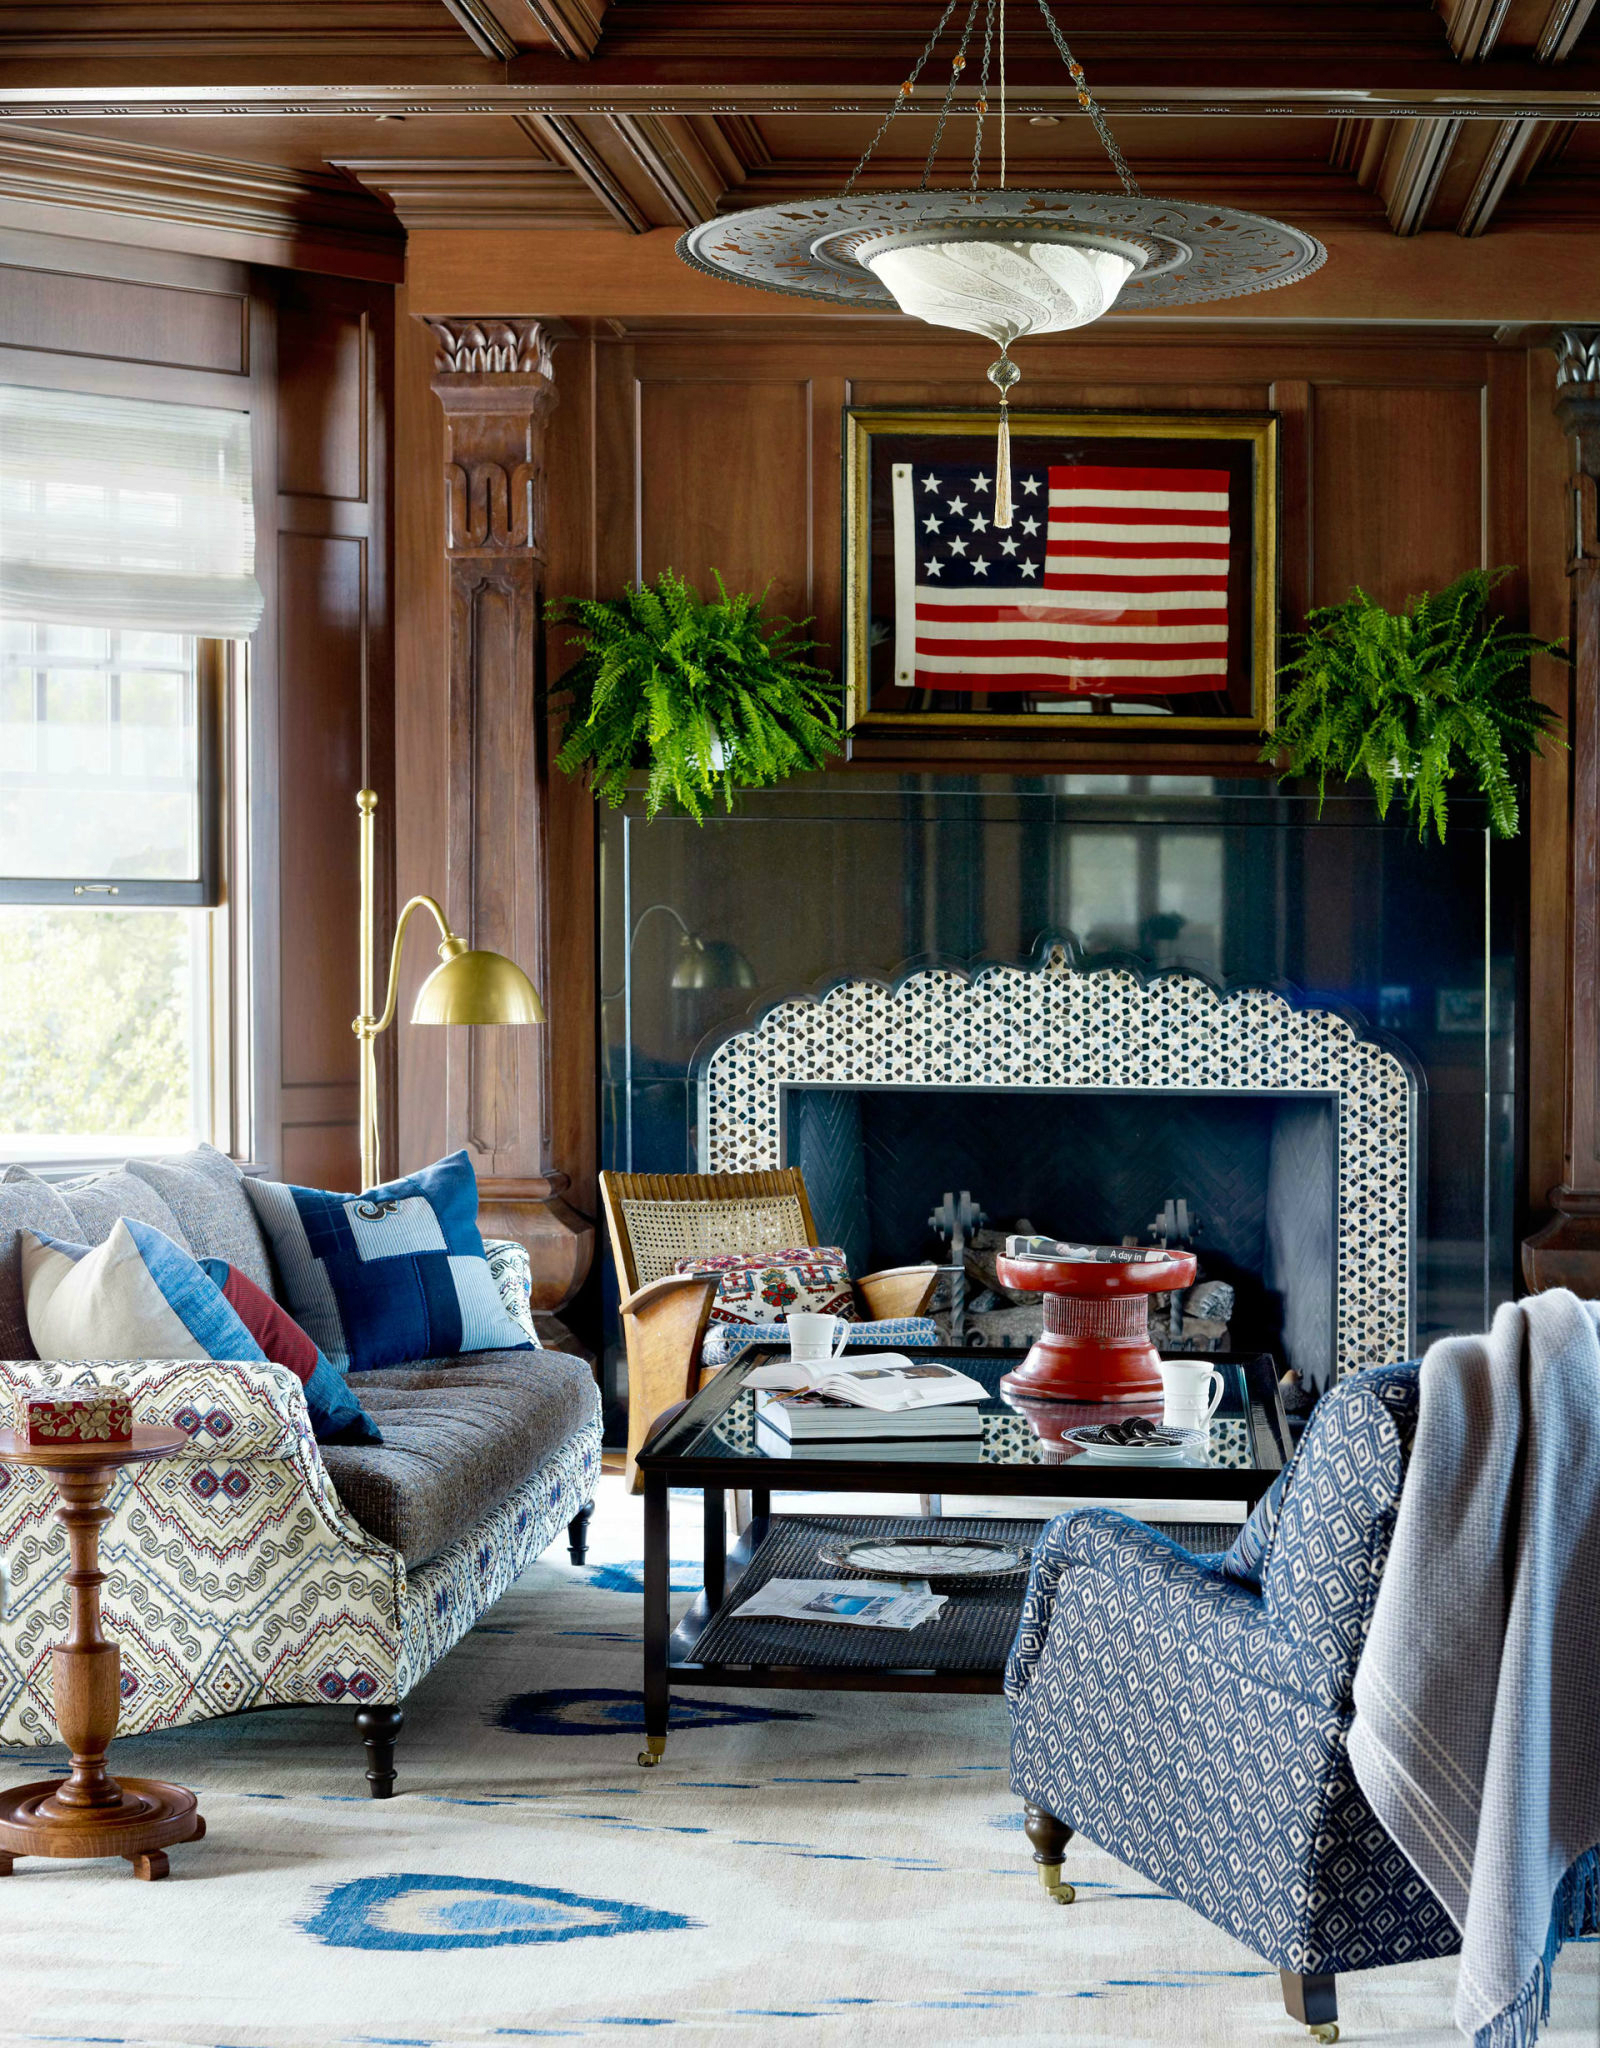 10 Chic Ways To Decorate In Red, White And Blue Living Room Red, White Part 46